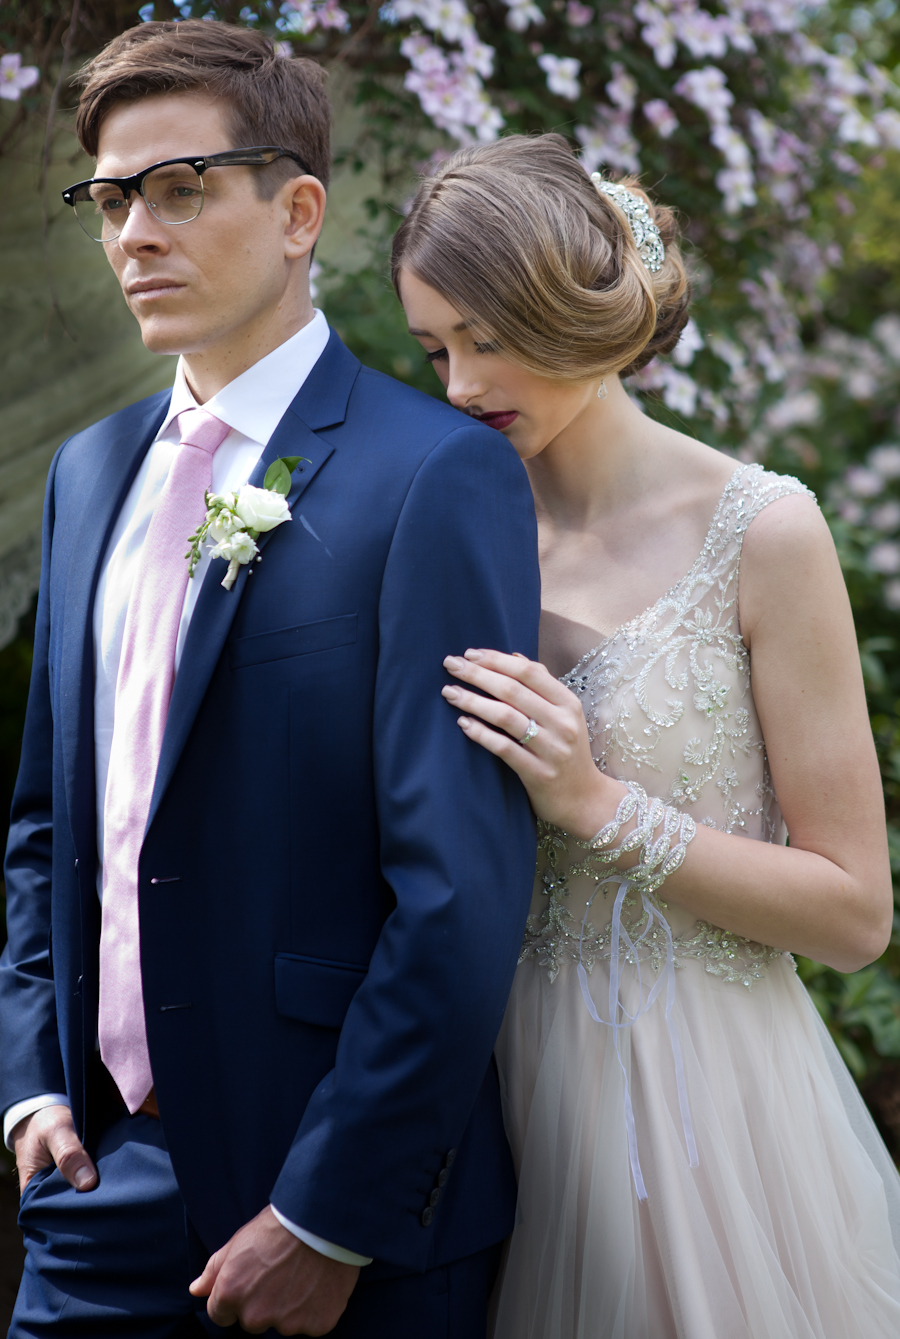 Outlooks for Men menswear and Blush Bridal Boutique wedding dress Victoria BC